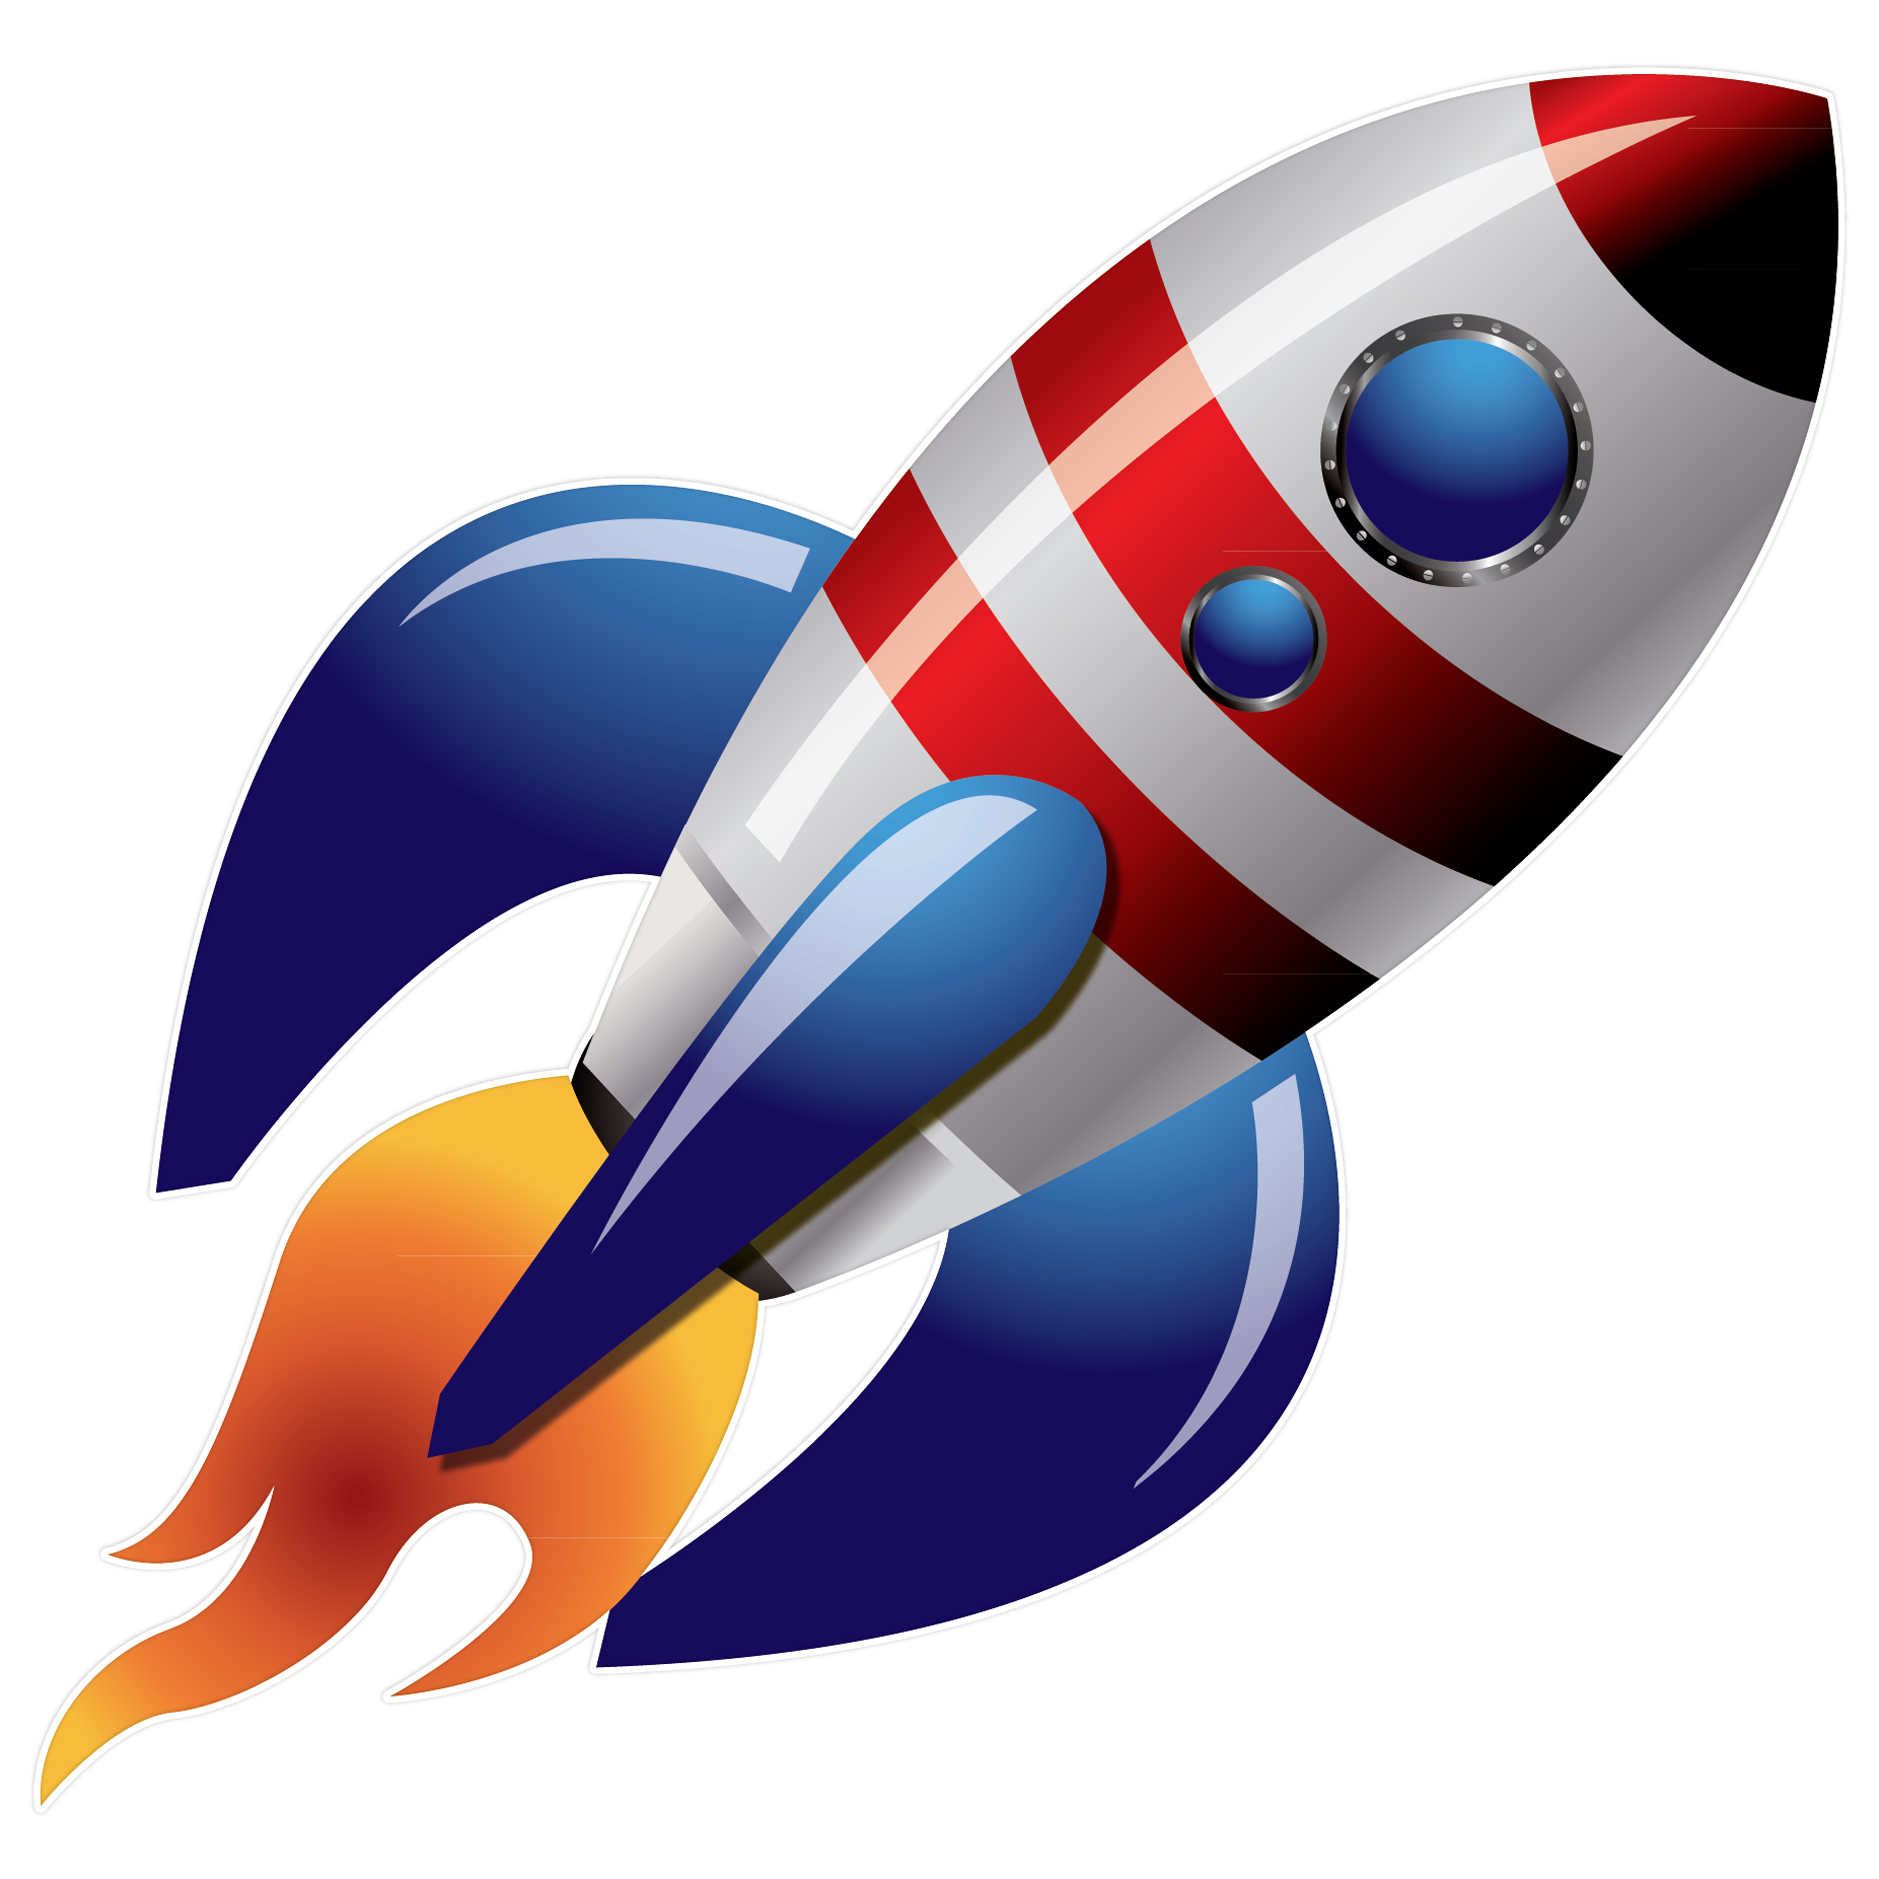 1879x1879 Rocket Ship Png Hd Transparent Rocket Ship Hd.png Images. Pluspng